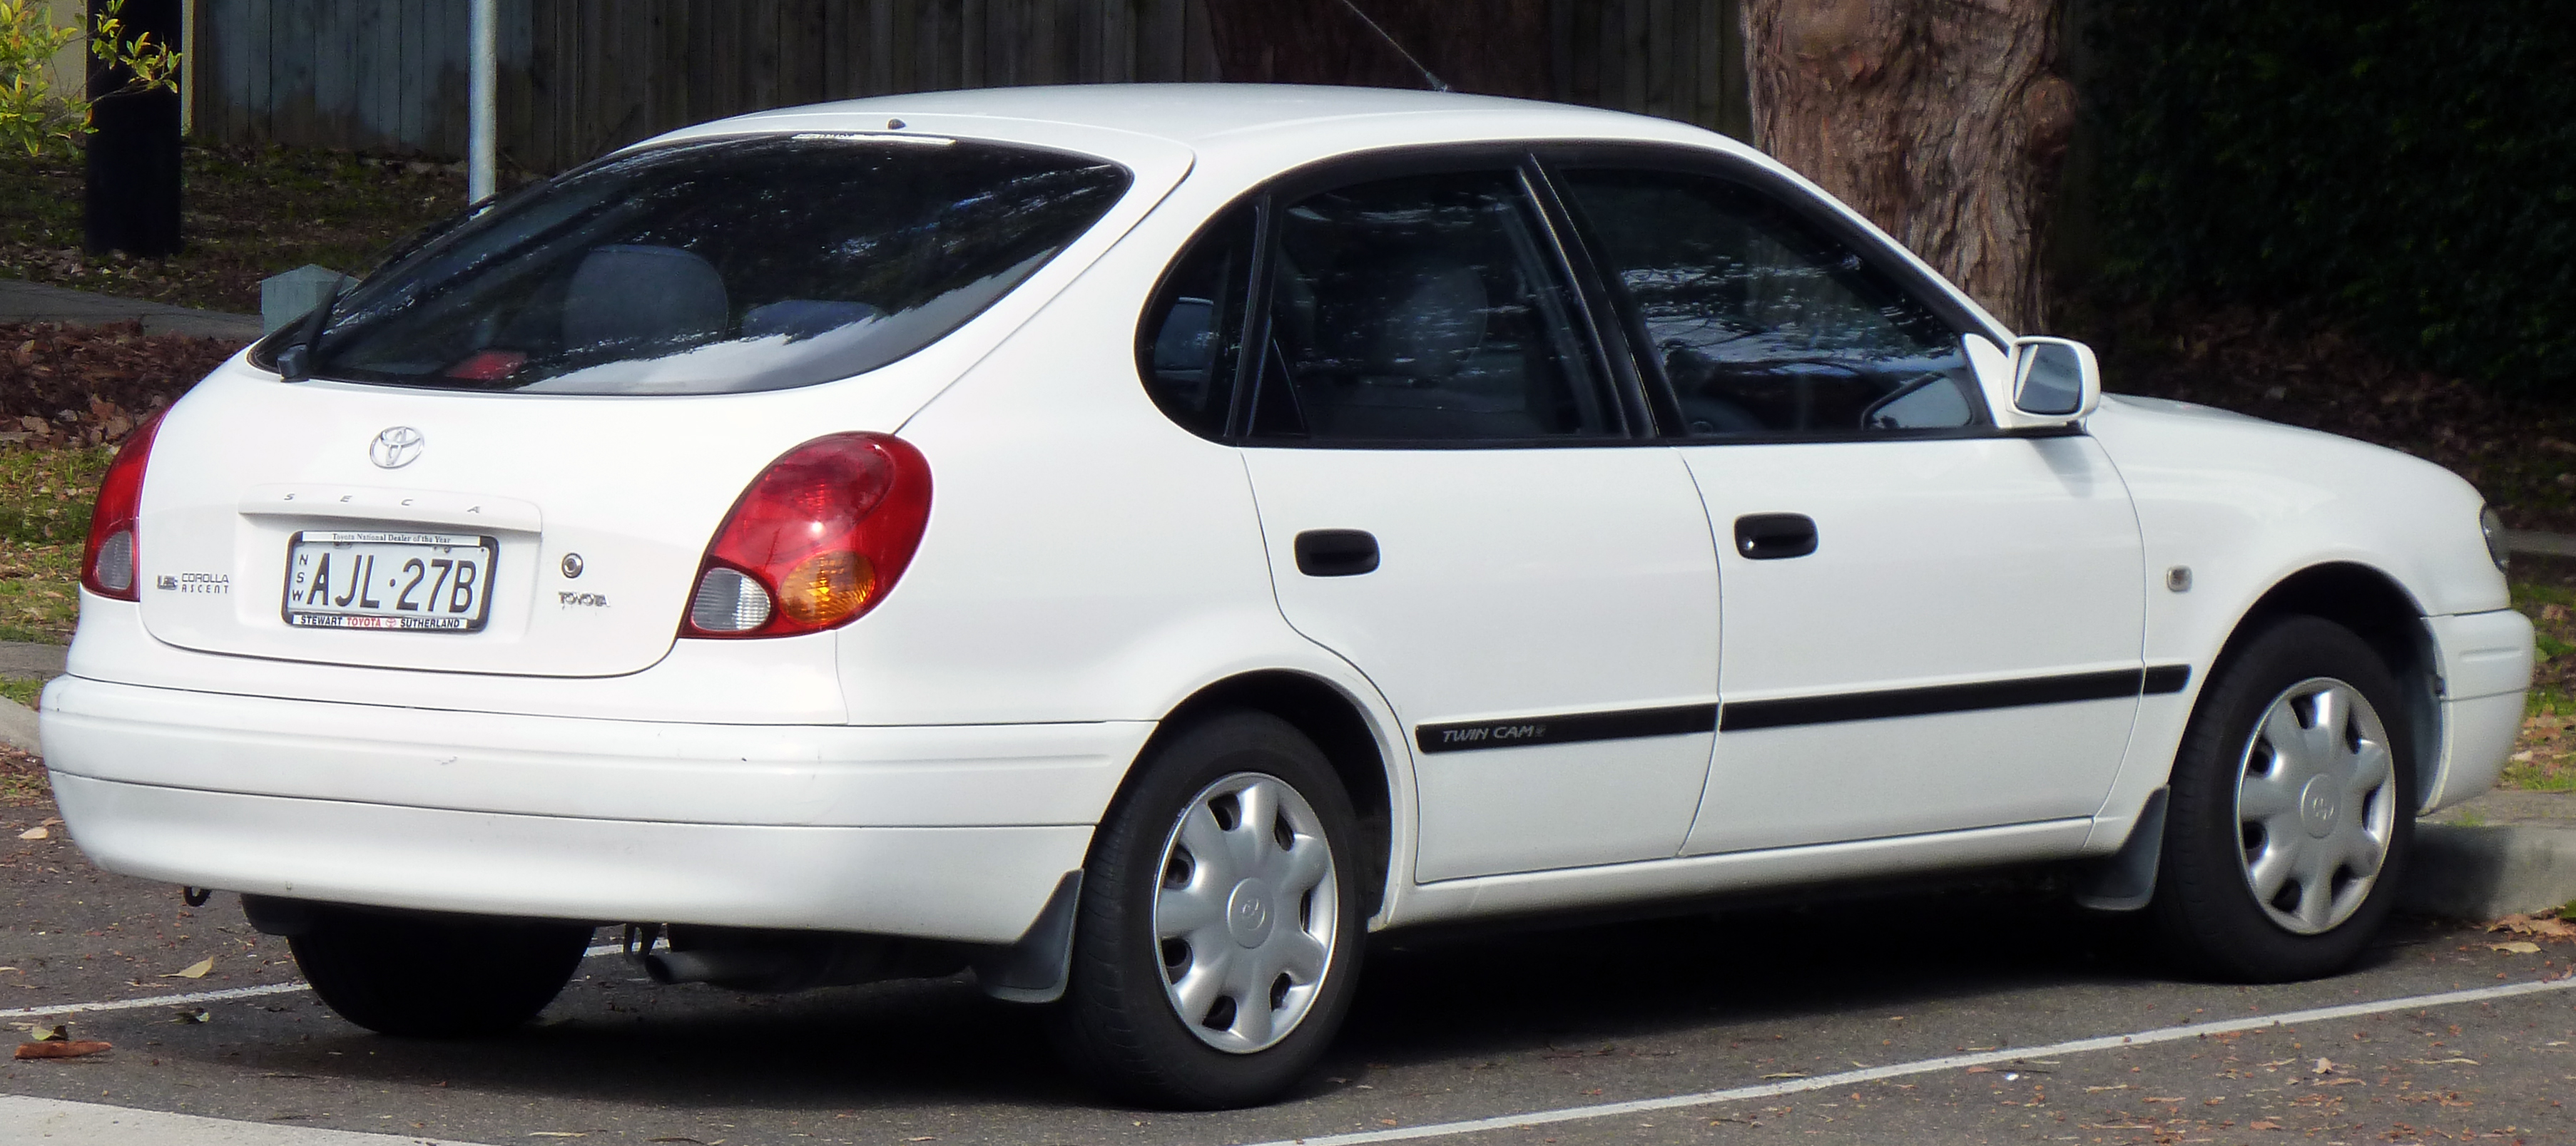 1997 toyota corolla csi seca manual